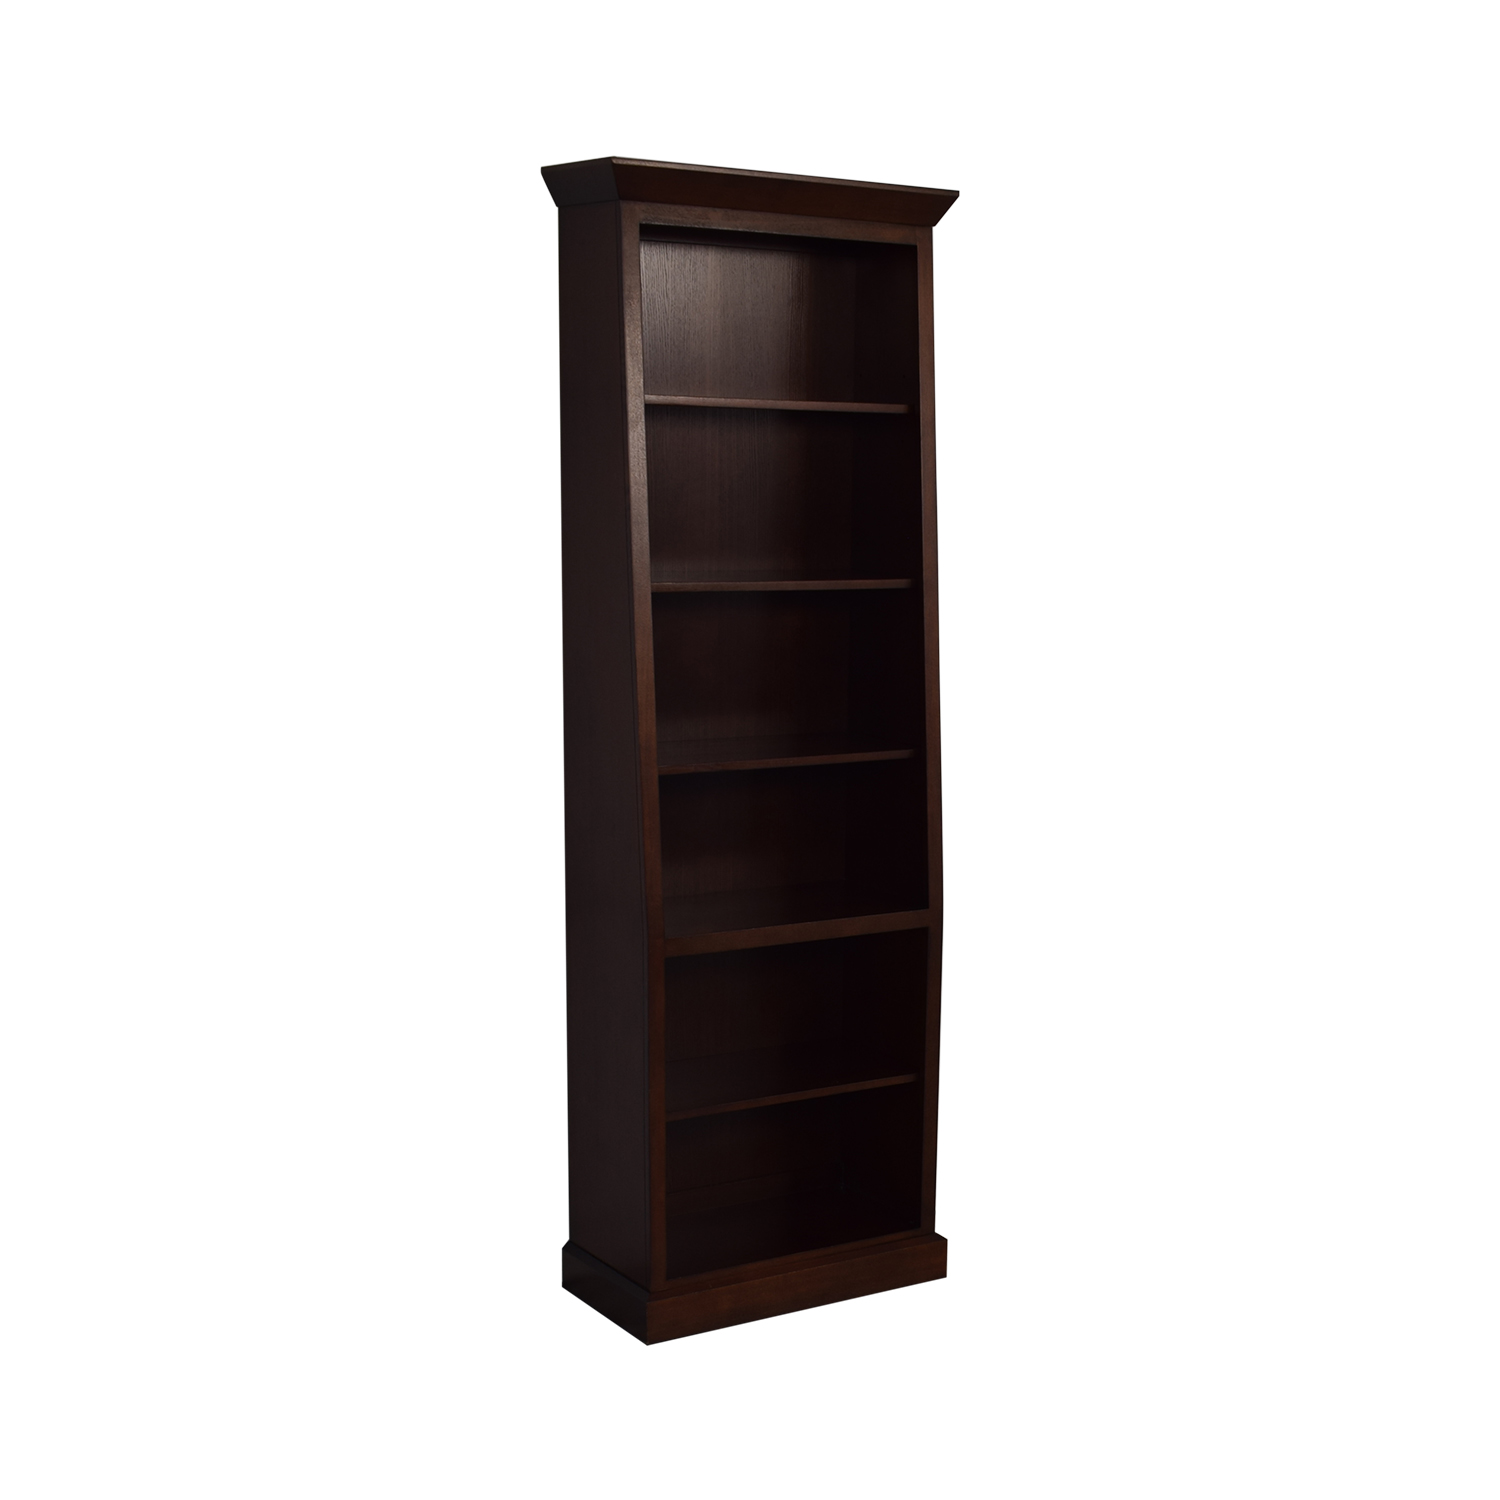 Ethan Allen Ethan Allen Wood Bookcase on sale